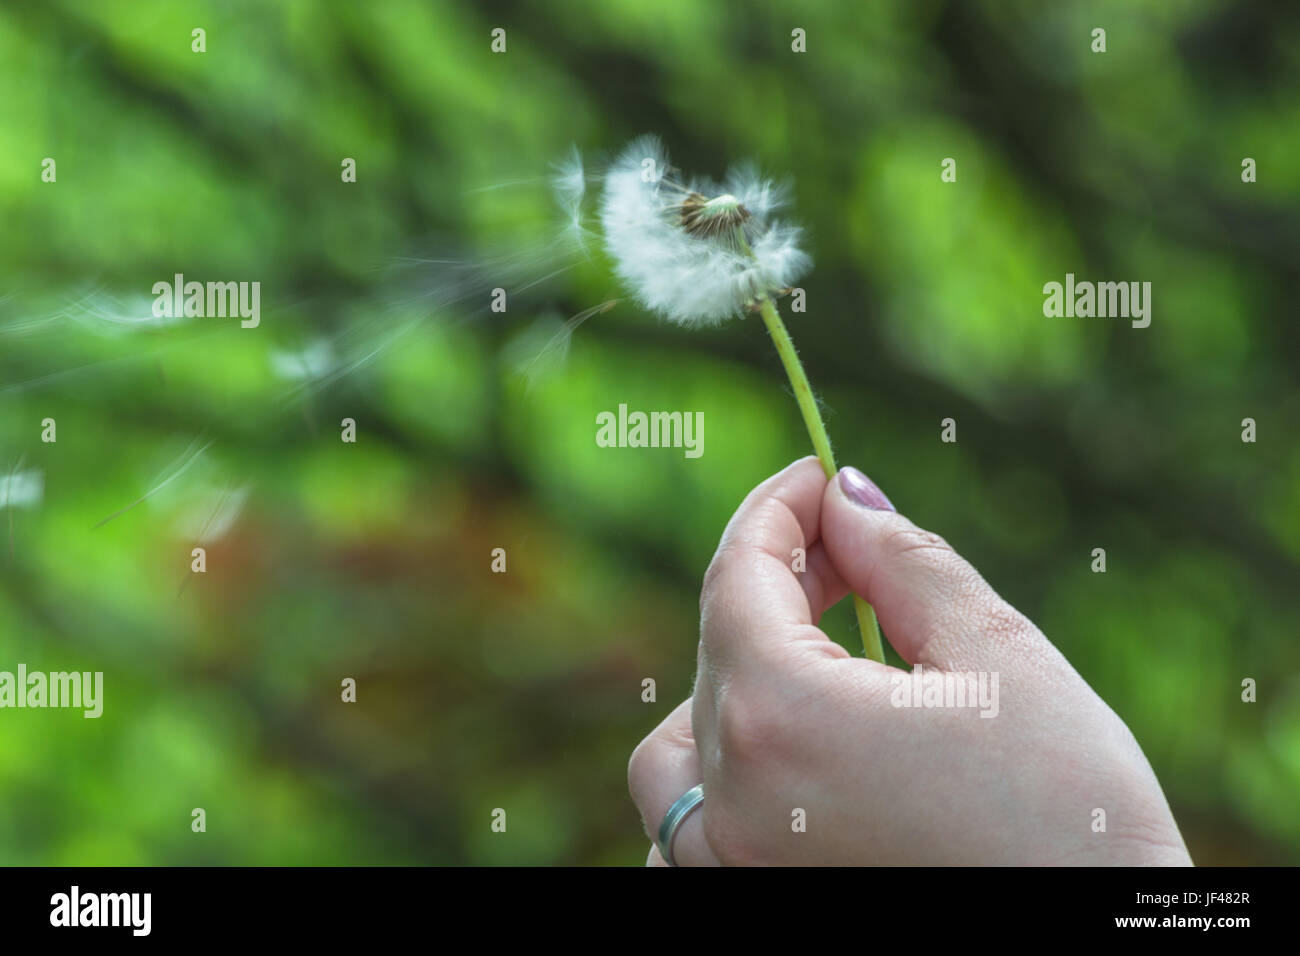 Closeup of dandelion in a hand Stock Photo